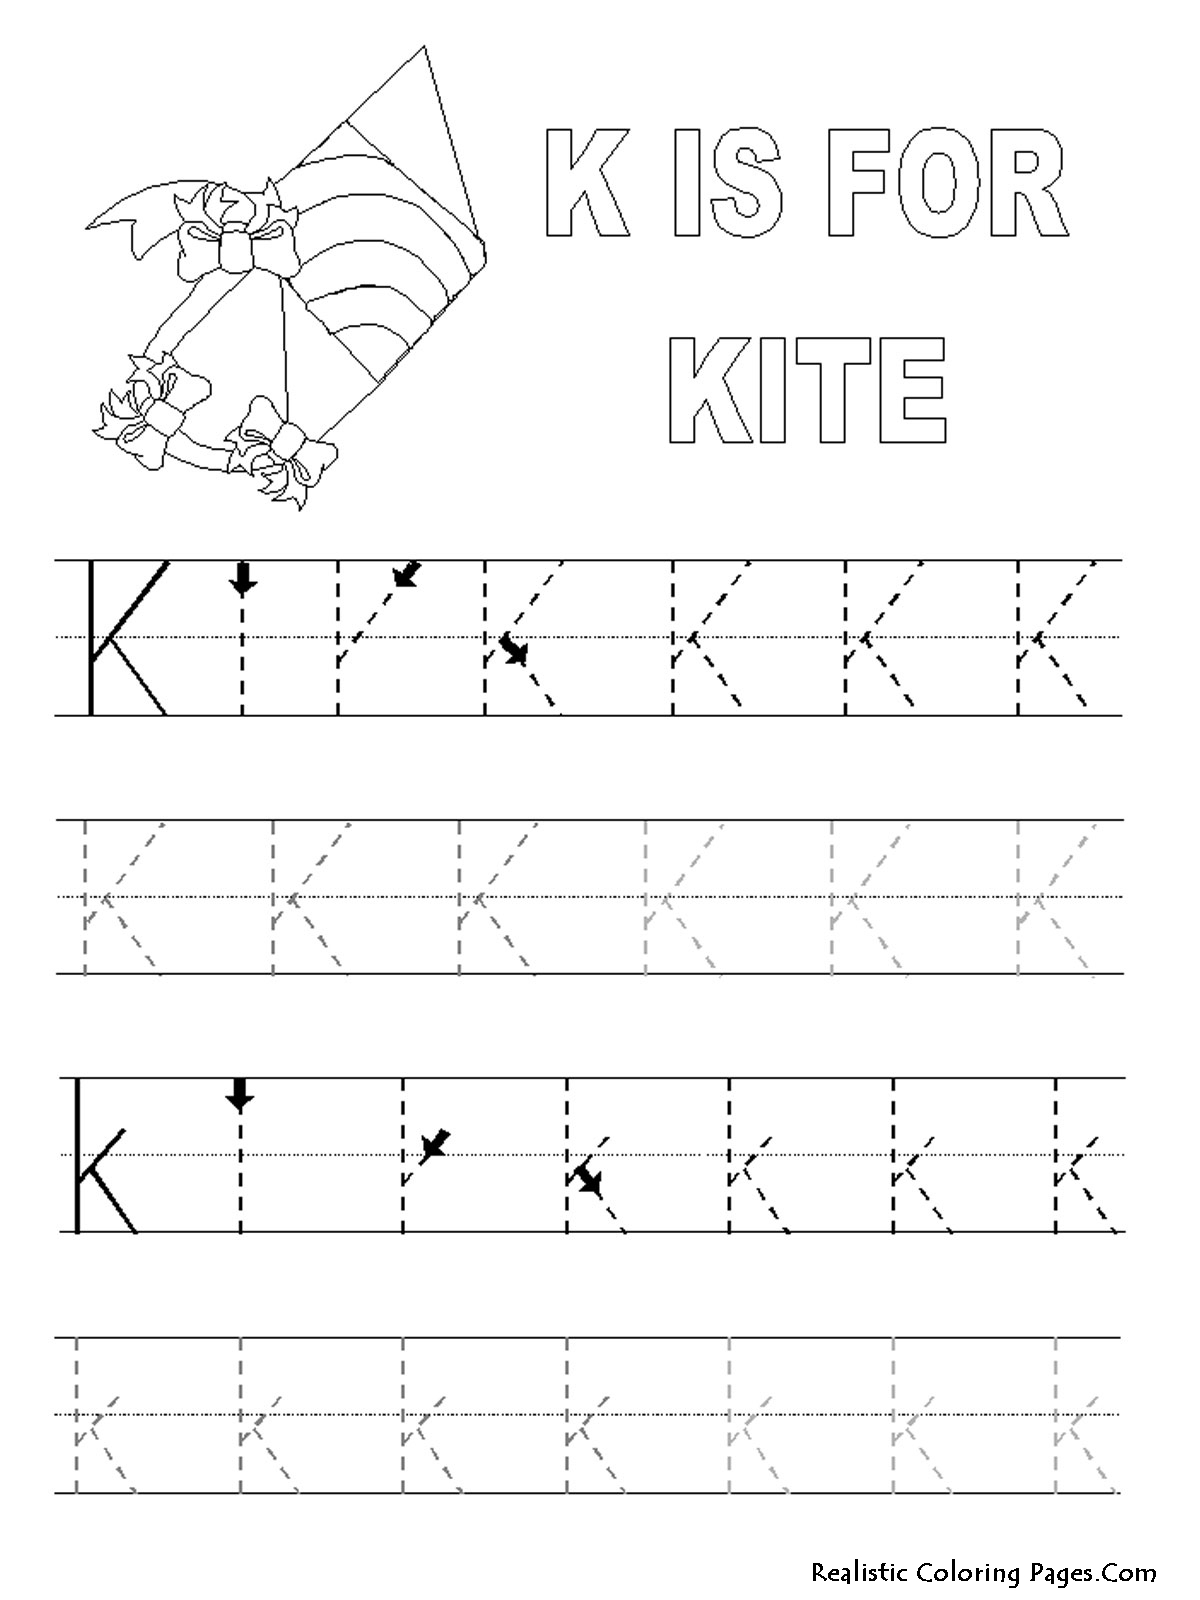 k letters alphabet coloring pages realistic coloring pages. Black Bedroom Furniture Sets. Home Design Ideas